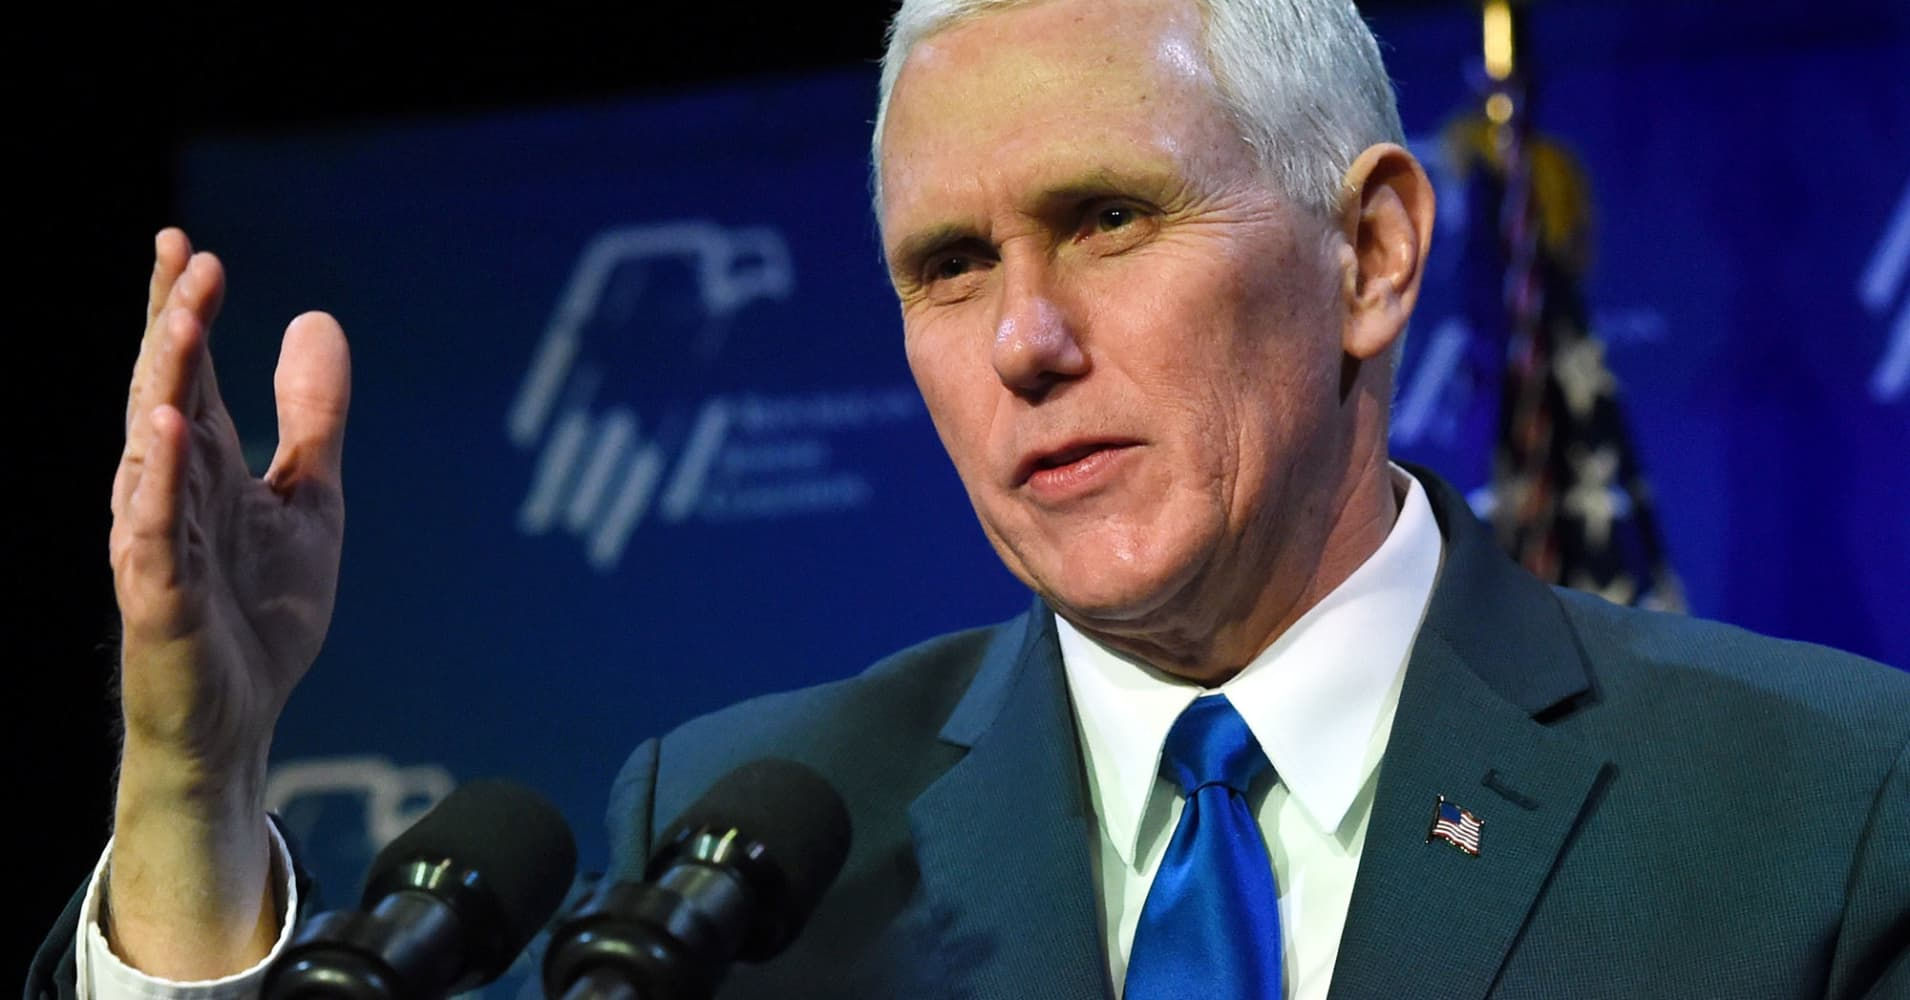 Questions arise about Mike Pence as controversies engulf the White House